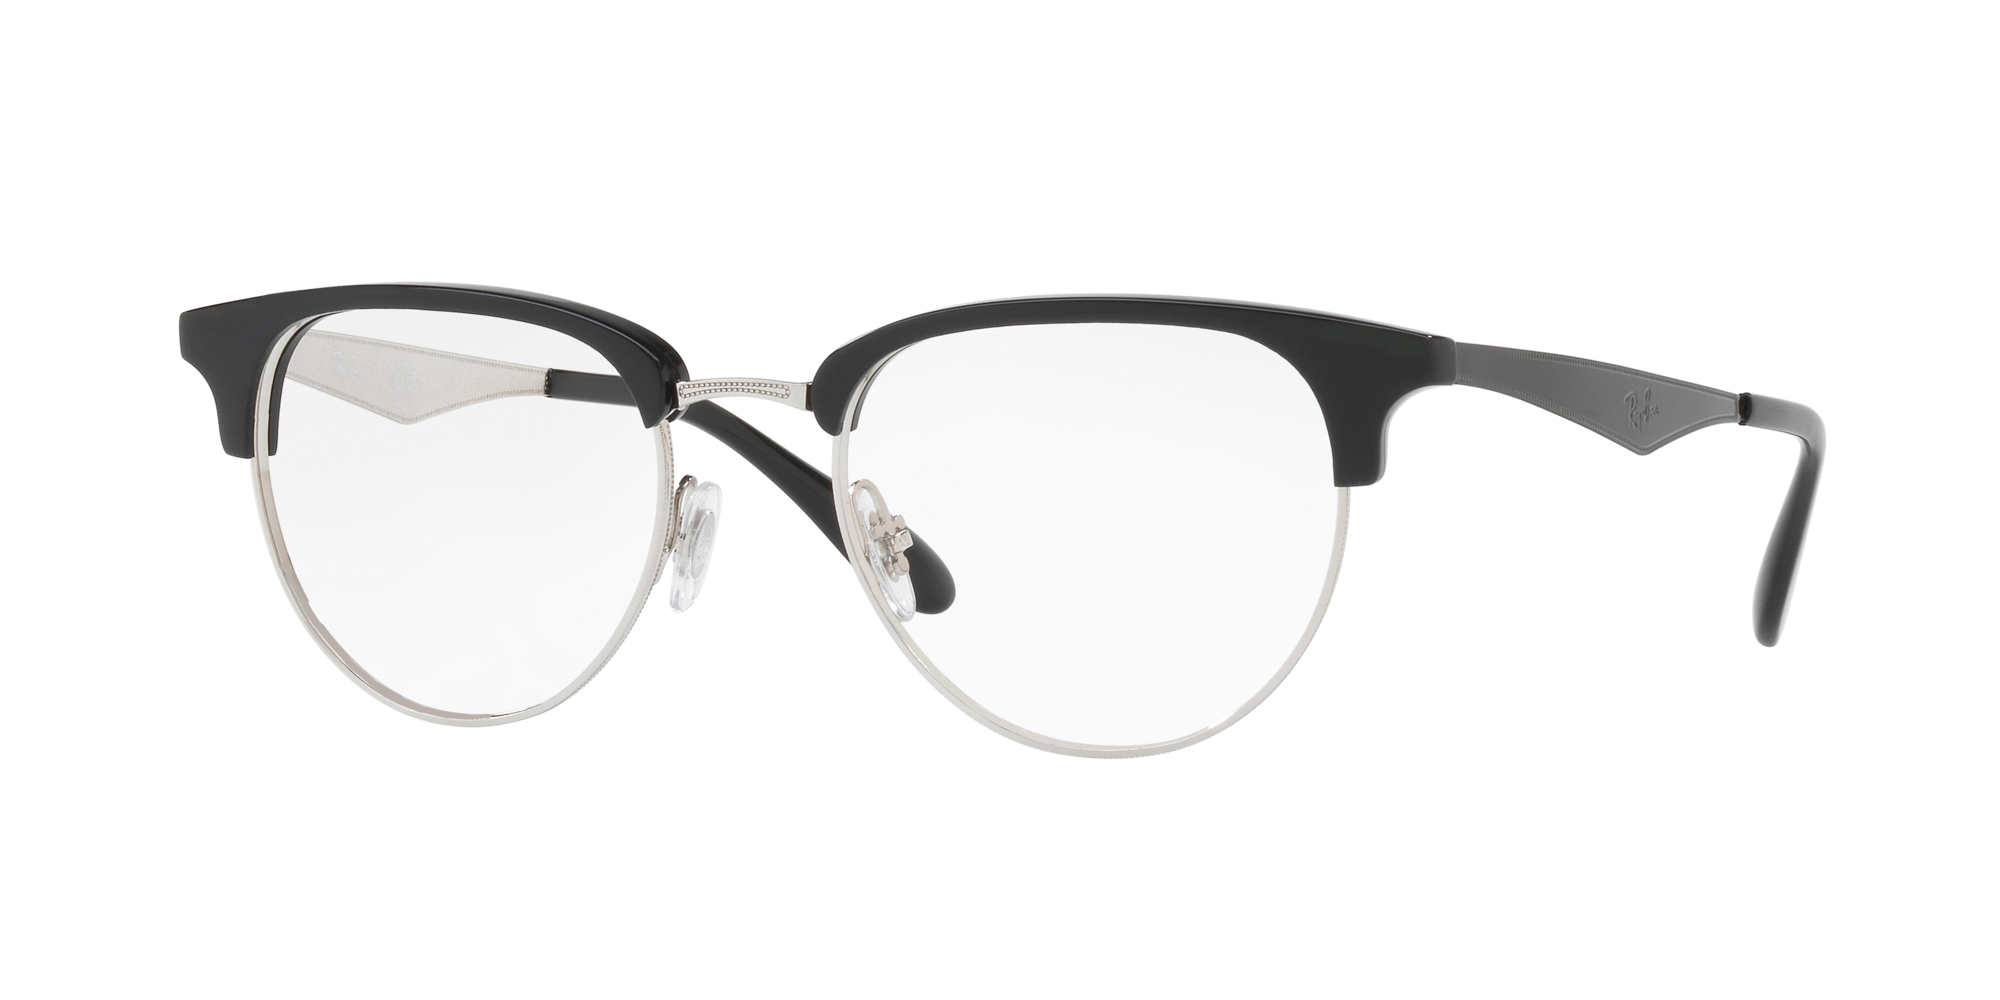 Ray-Ban Brille 0RX6396512932 bei ROTTLER